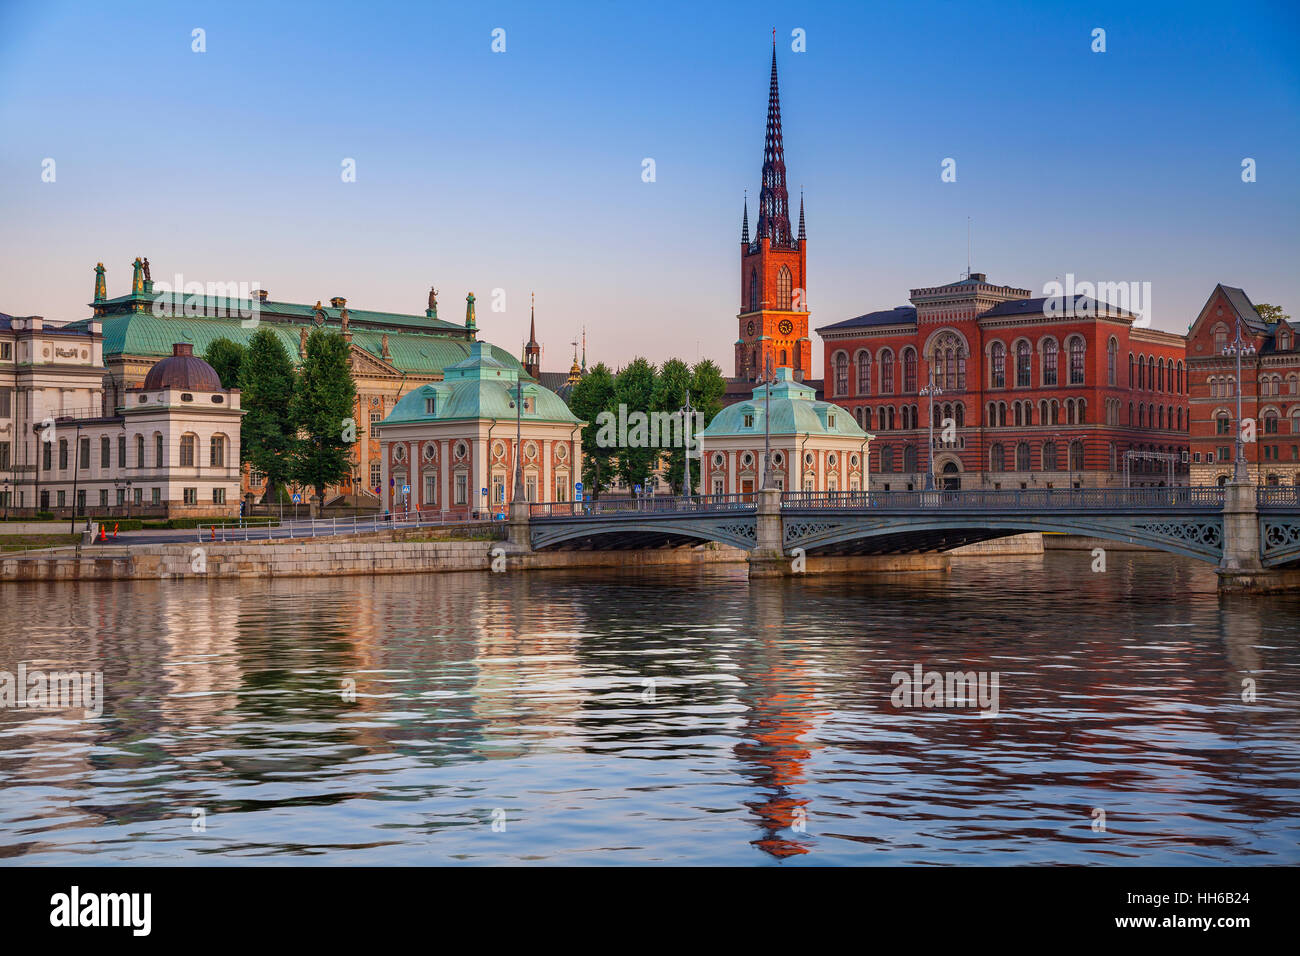 Stockholm. Image of Stockholm, Sweden during twilight blue hour. - Stock Image